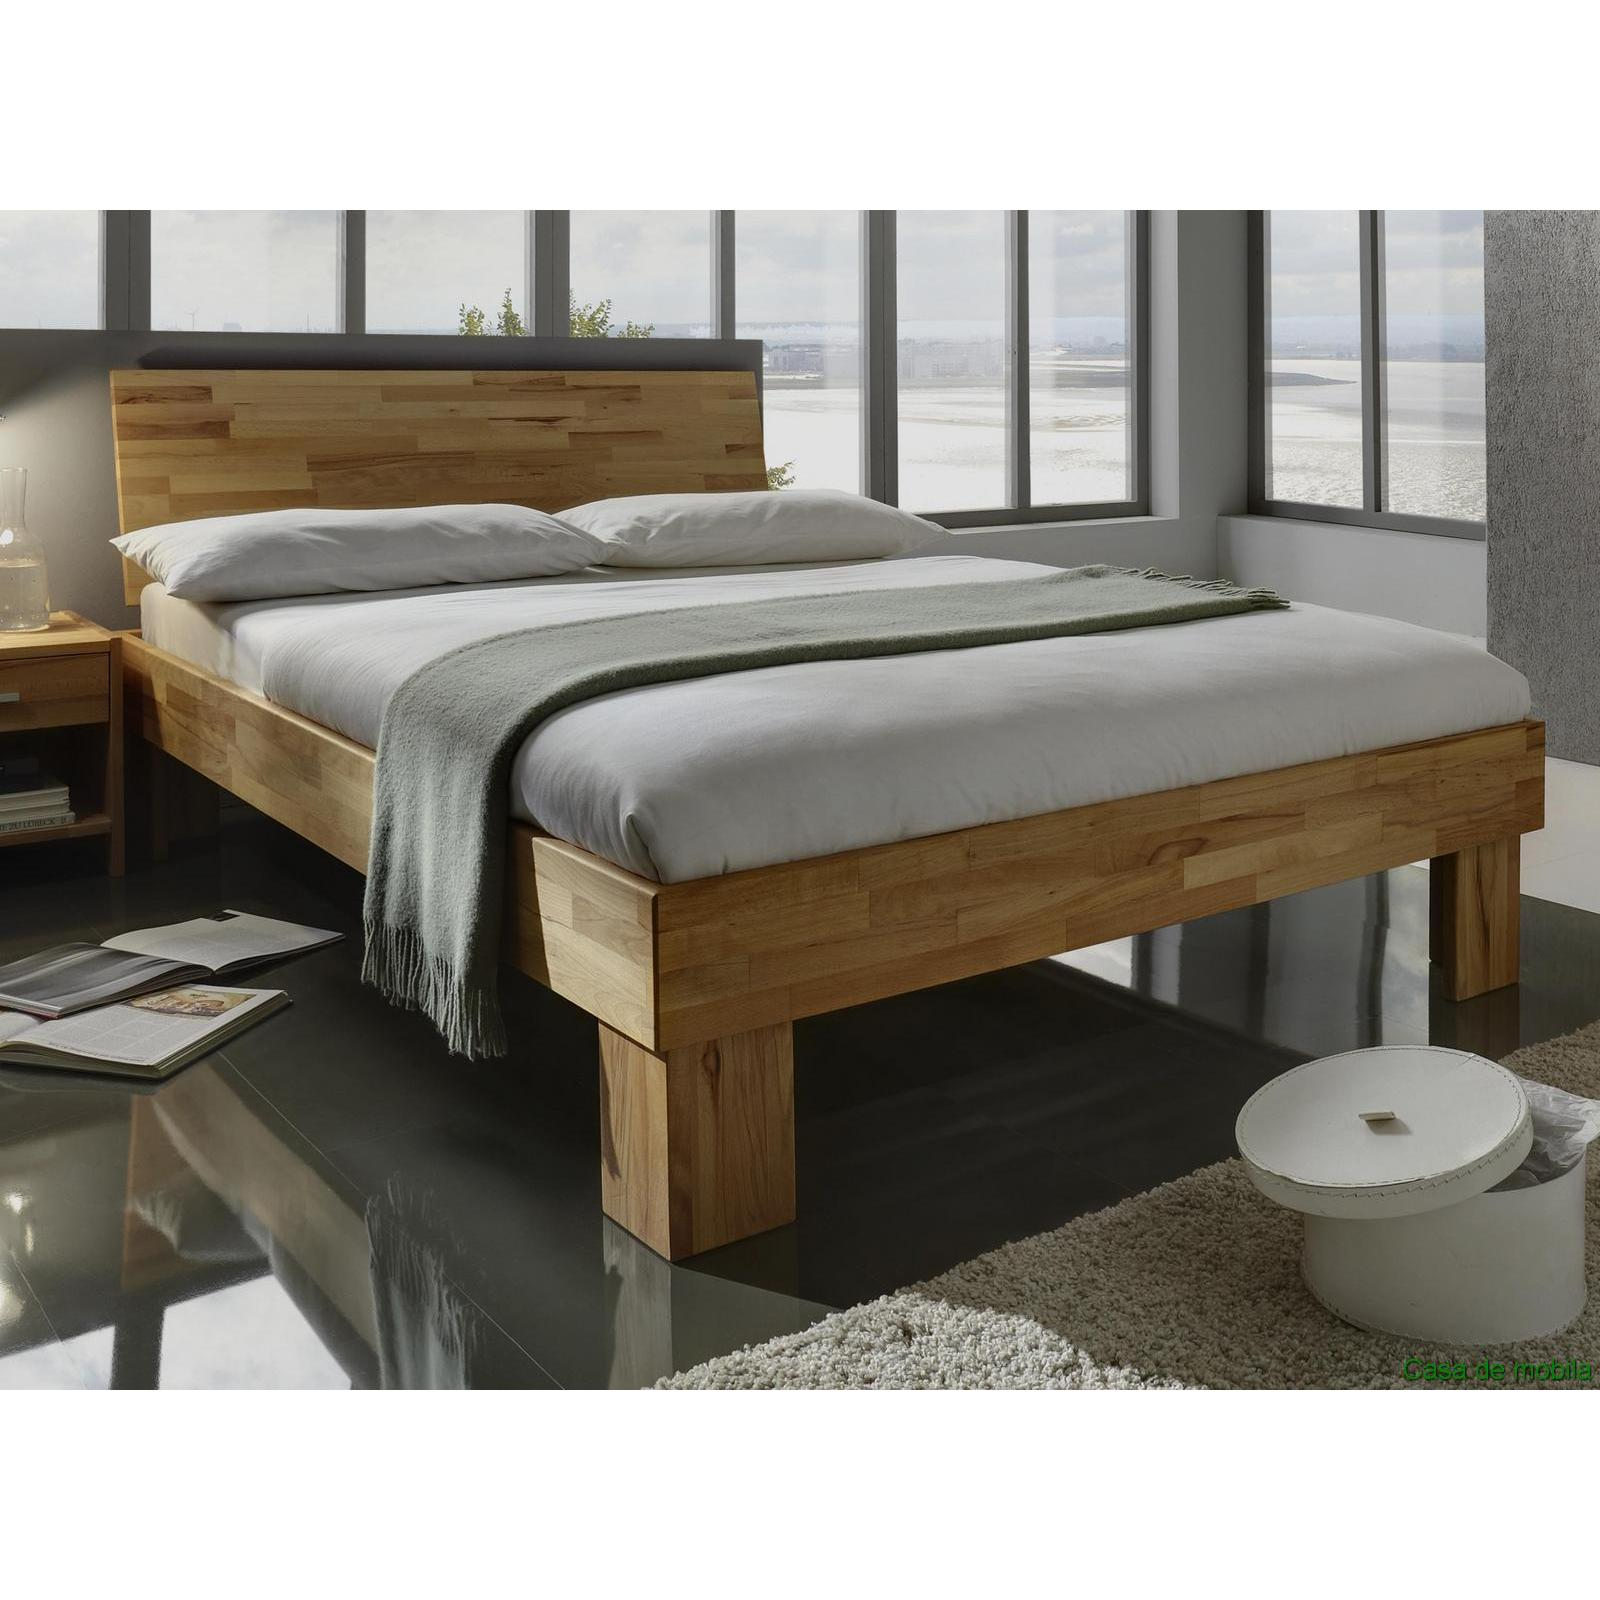 vollholz einzelbett bett kernbuche massiv ge lt gamma holzbett 90x200. Black Bedroom Furniture Sets. Home Design Ideas